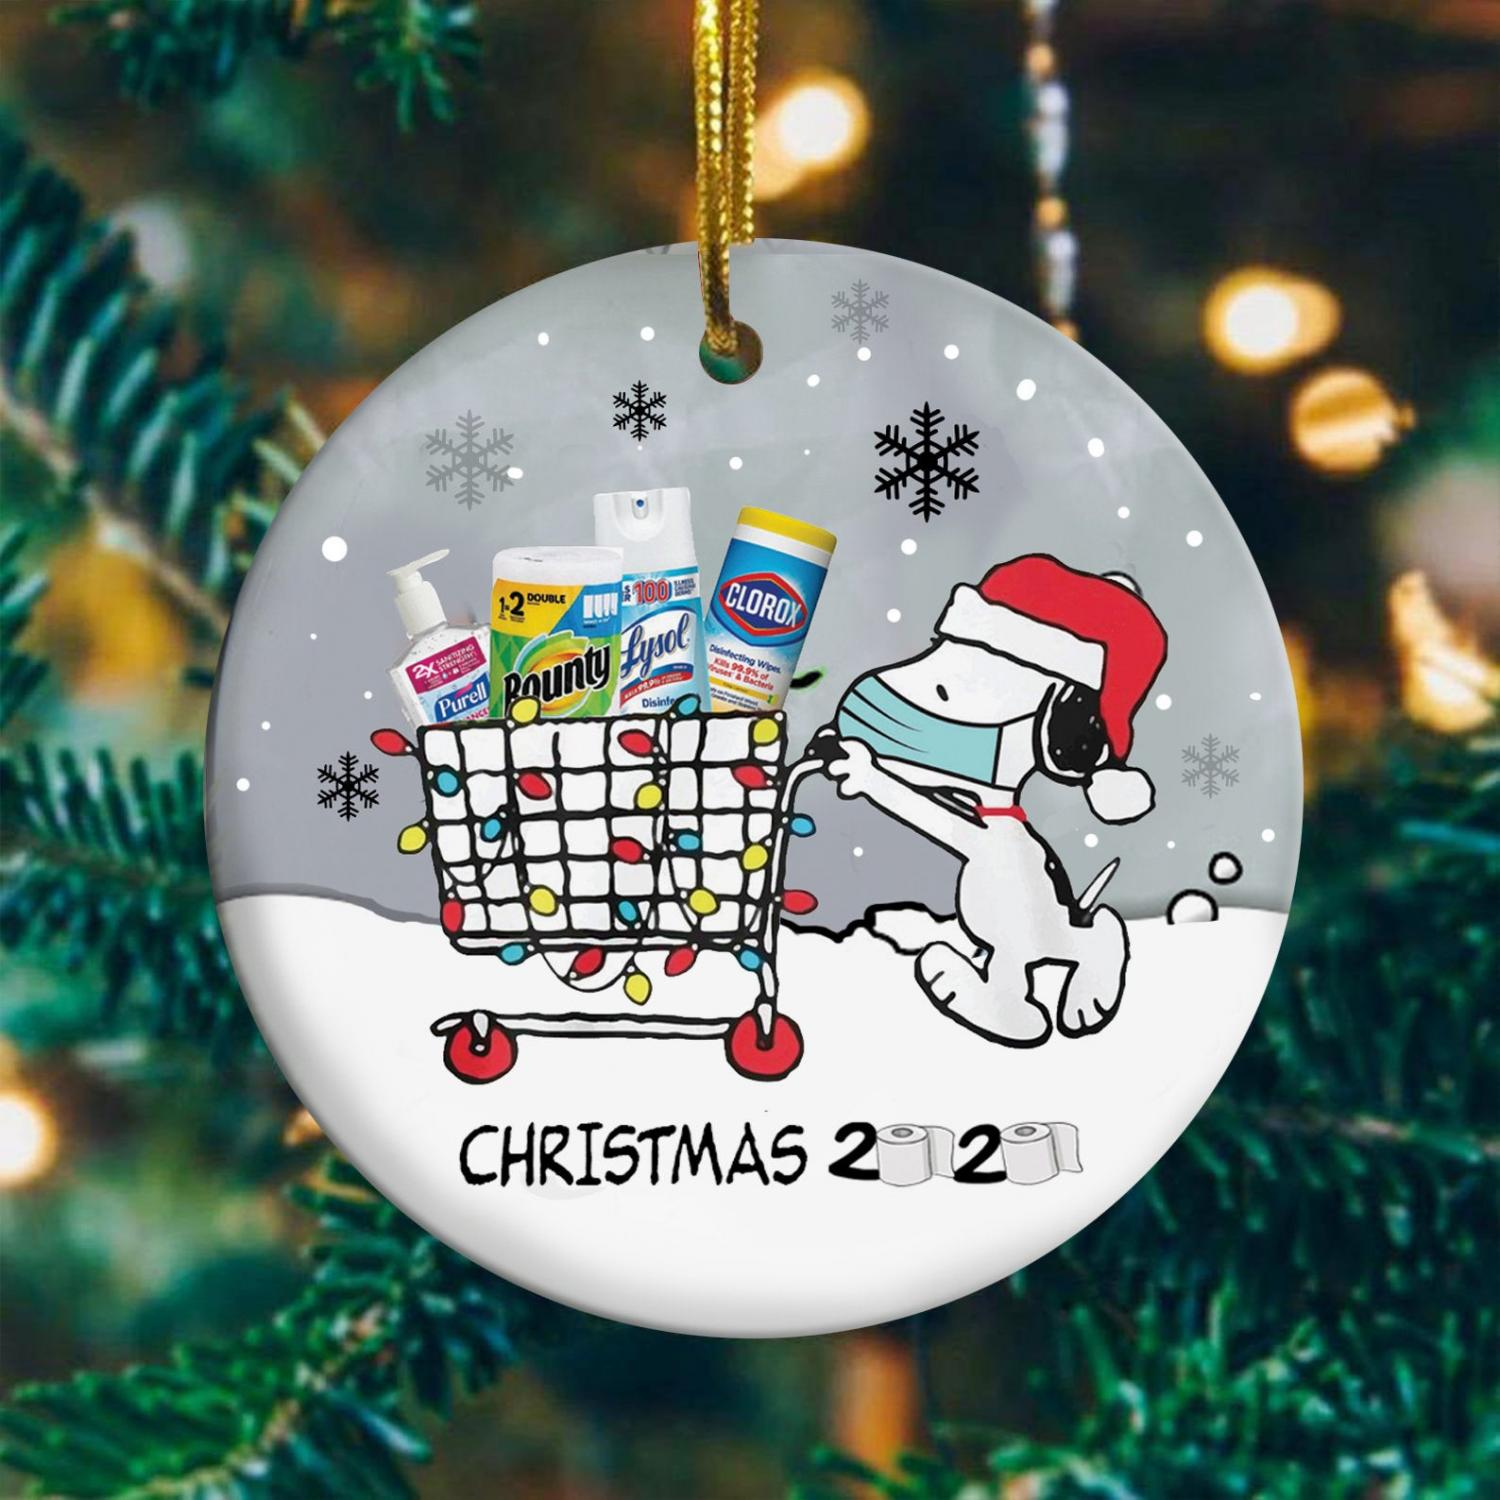 Funny 2020 Christmas Ornament - Best hilarious 2020 ornaments